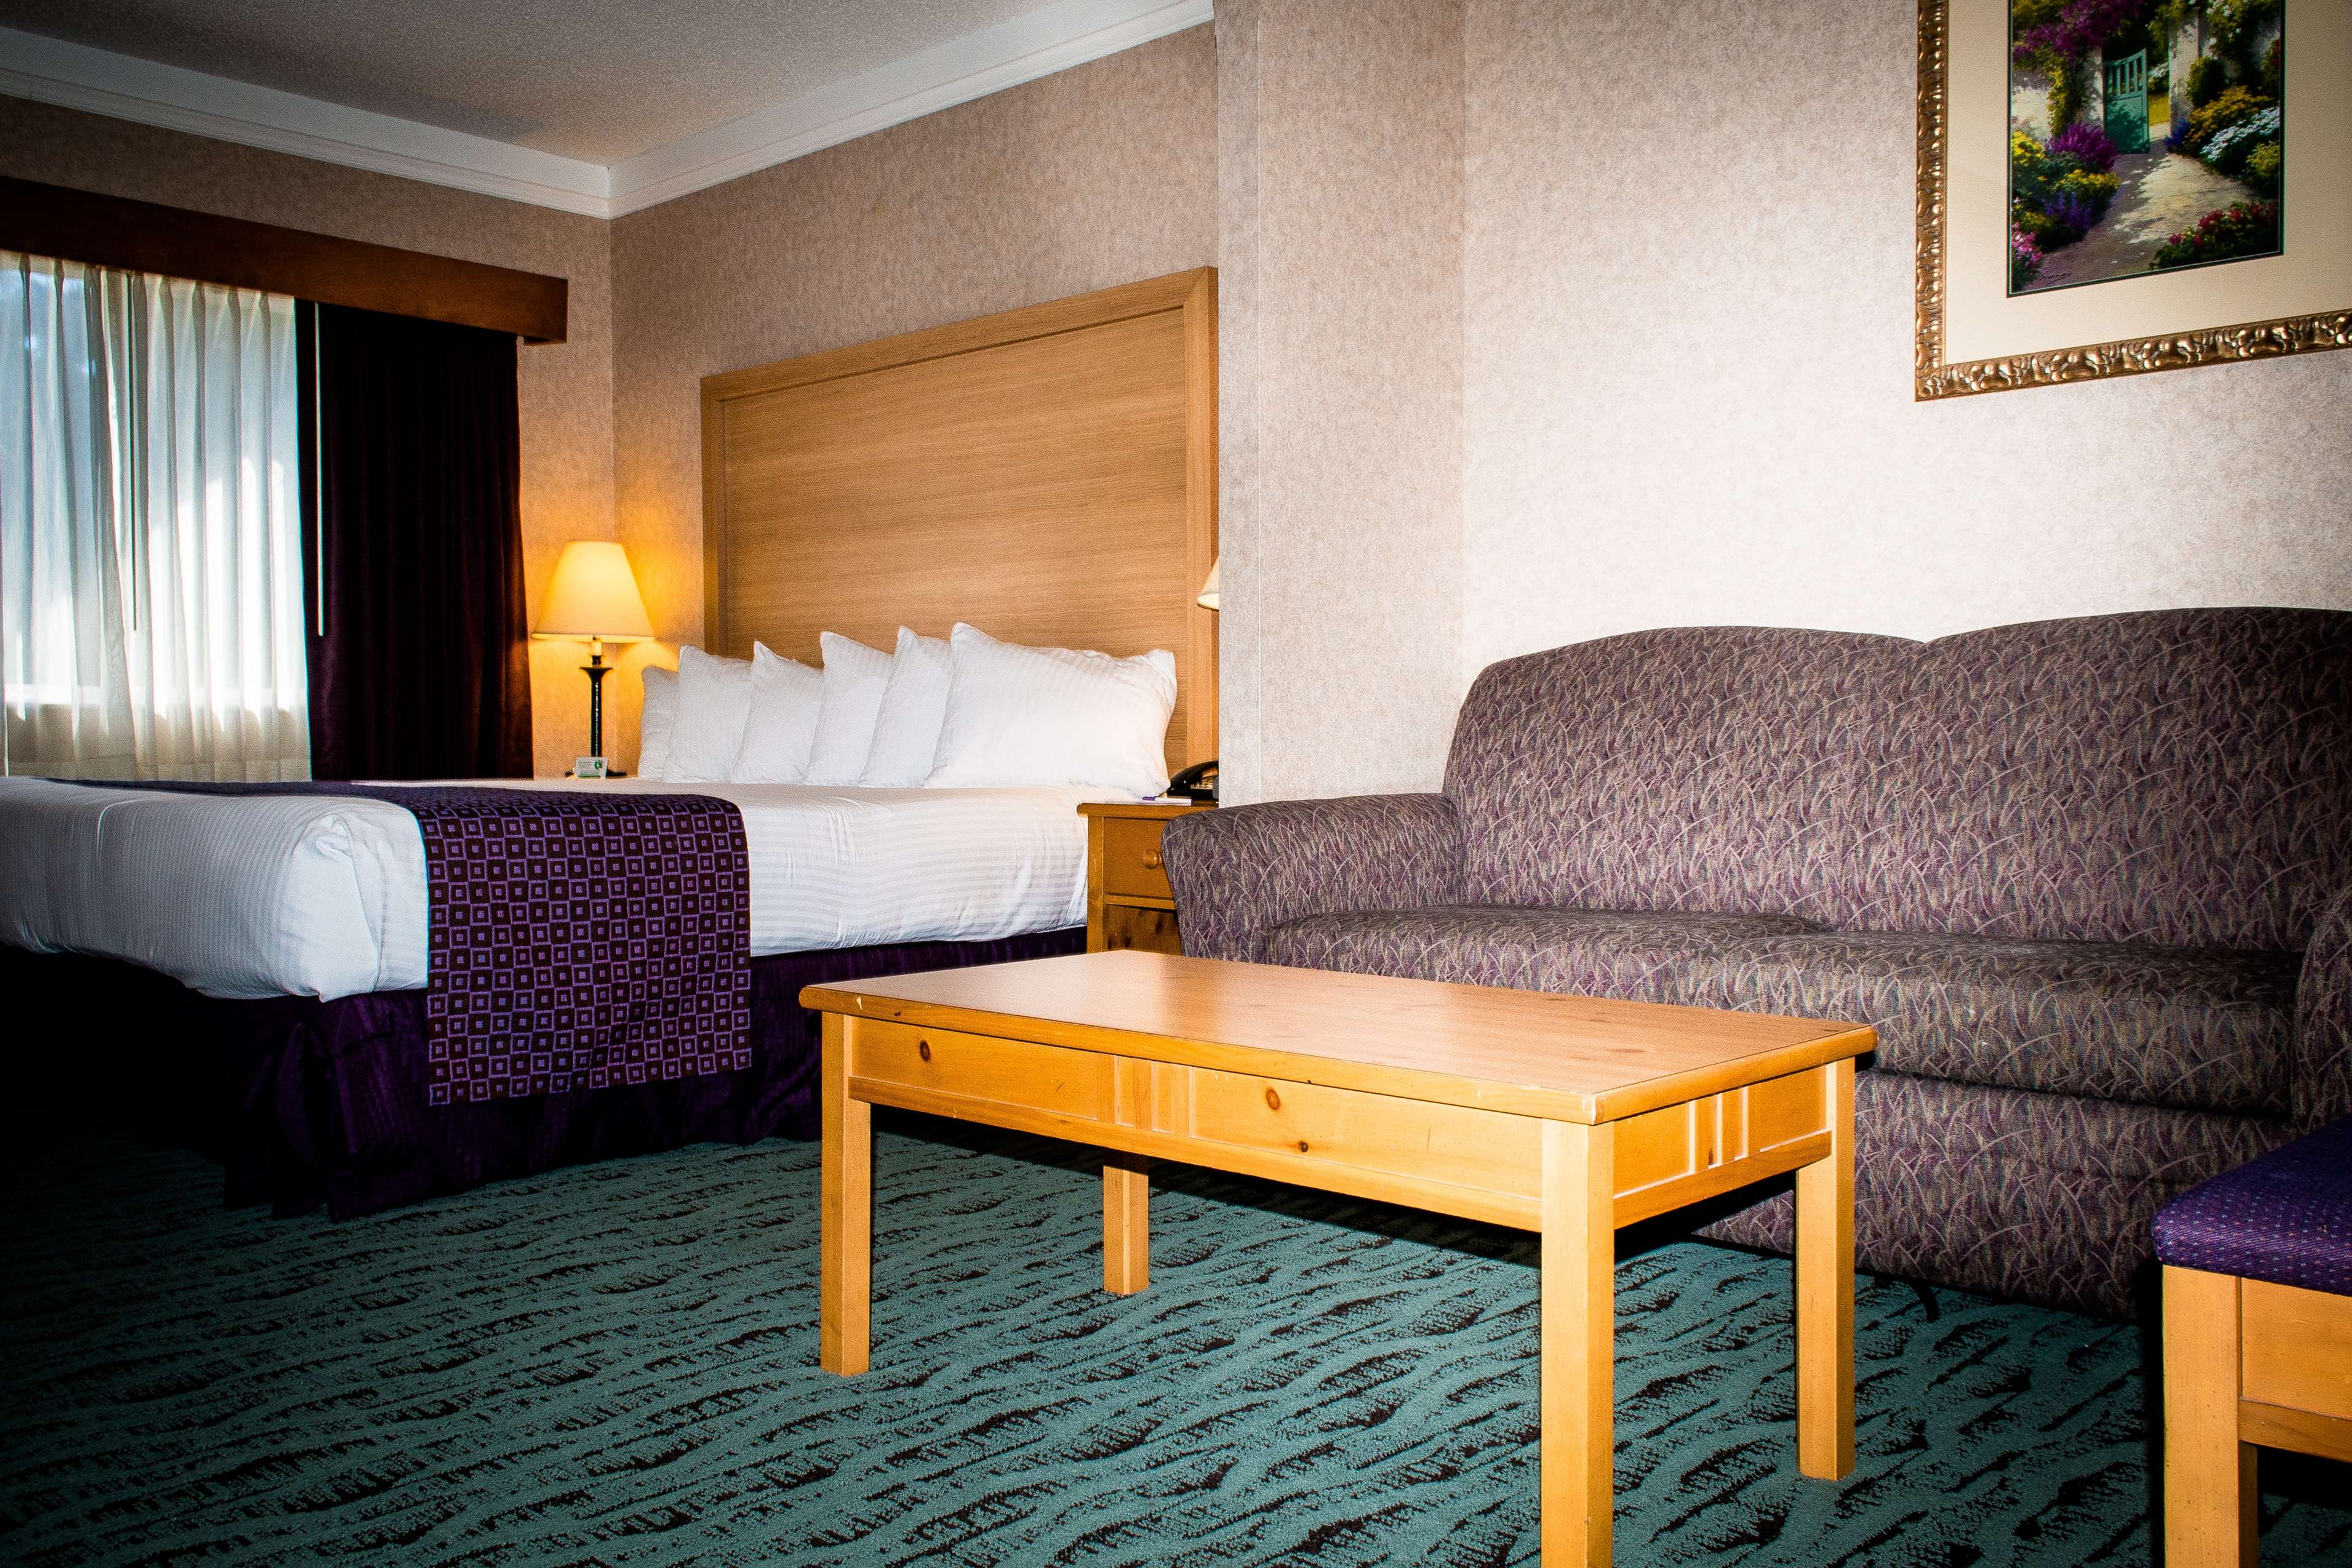 Best Western Plus Executive Court Inn & Conference Center image 29